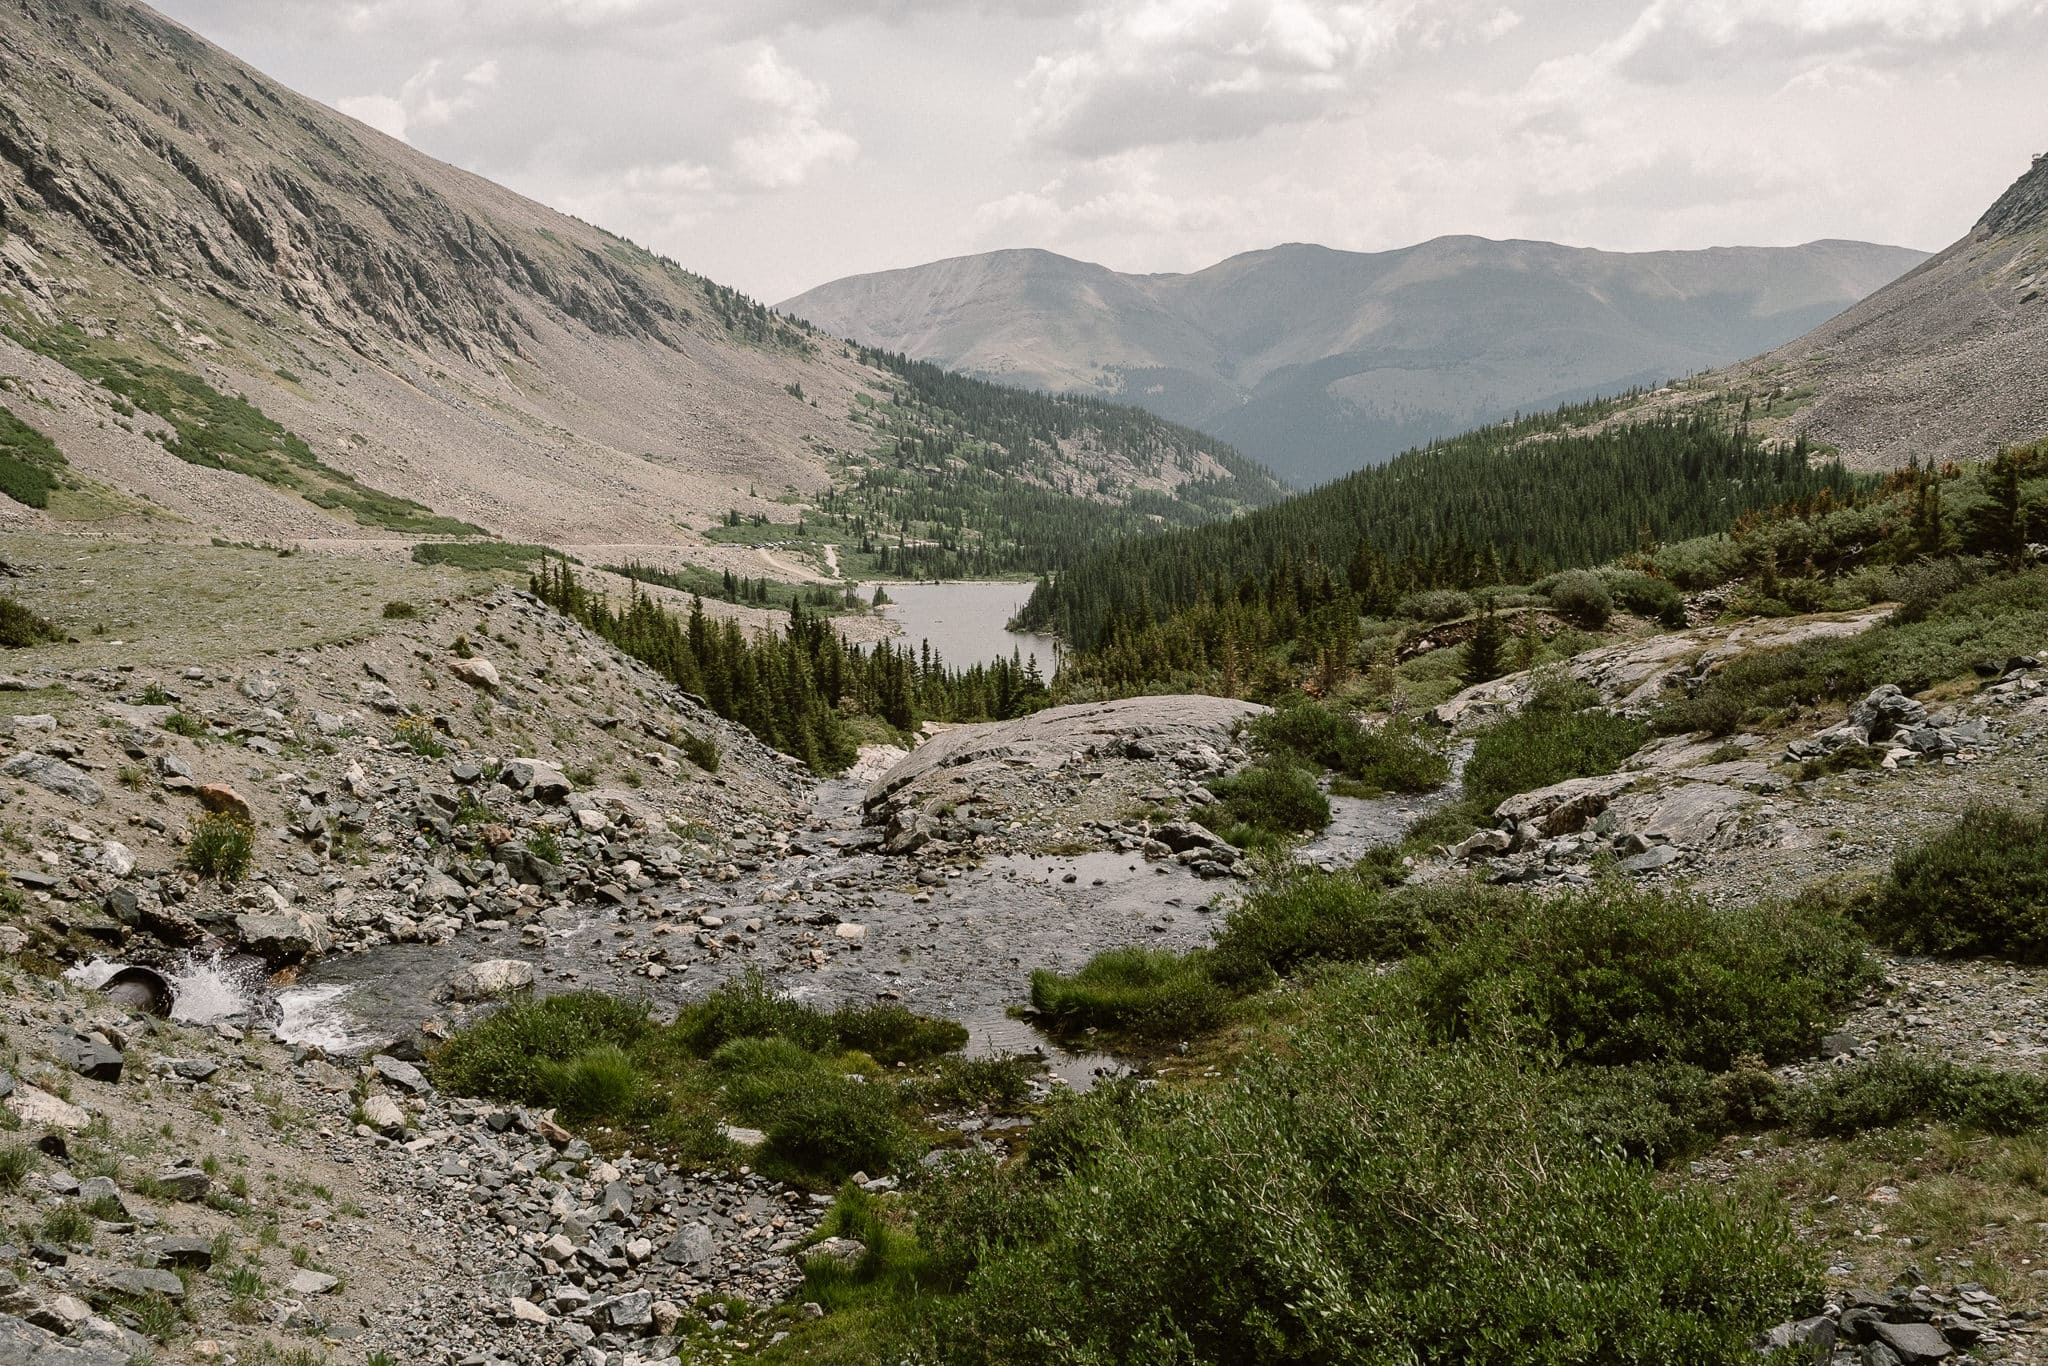 Breckenridge Elopement Locations, Colorado adventure wedding photographer, alpine lakes, mountain hike